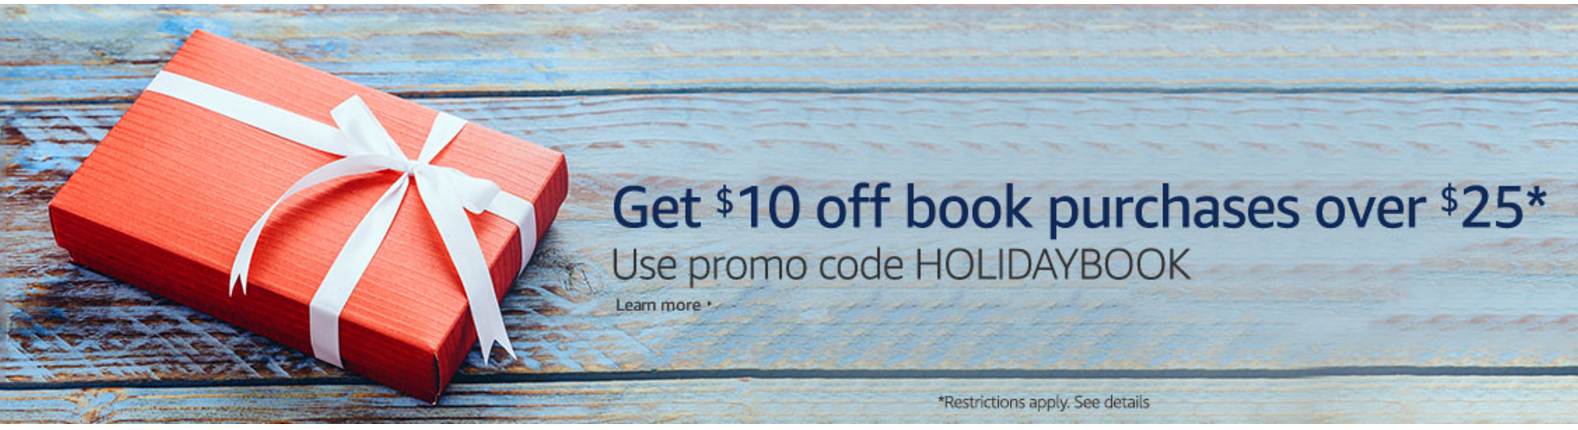 Amazon $10 off $25 BOOK Purchase!